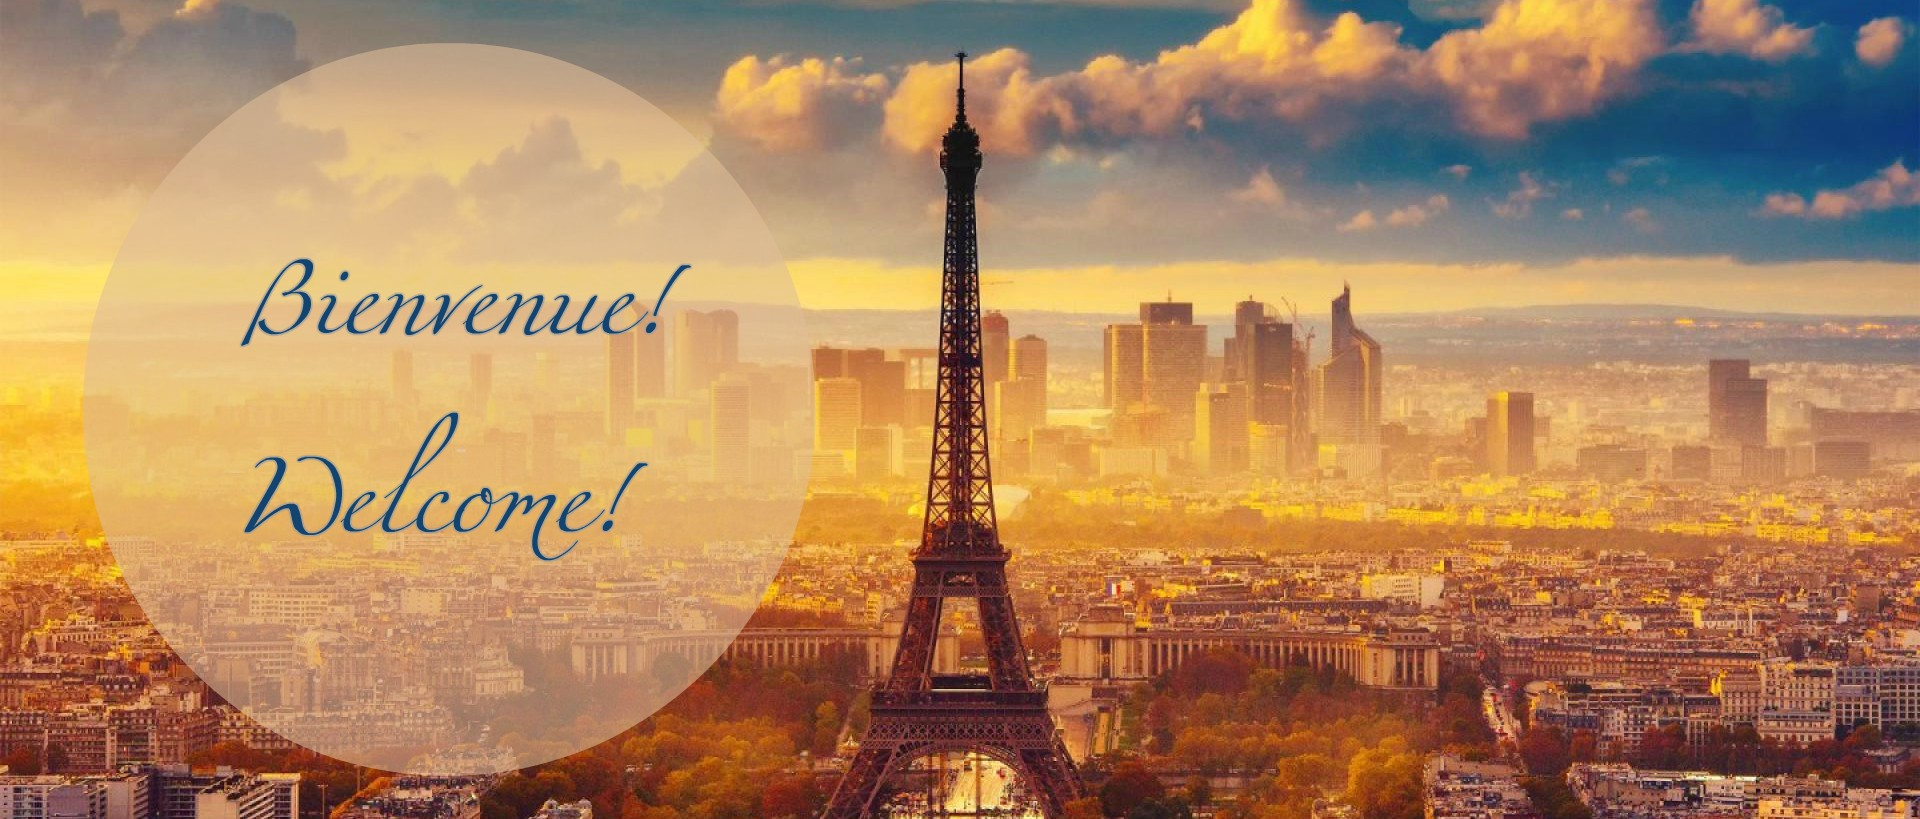 A picture of Paris with the word Bienvenue! (Welcome in French).